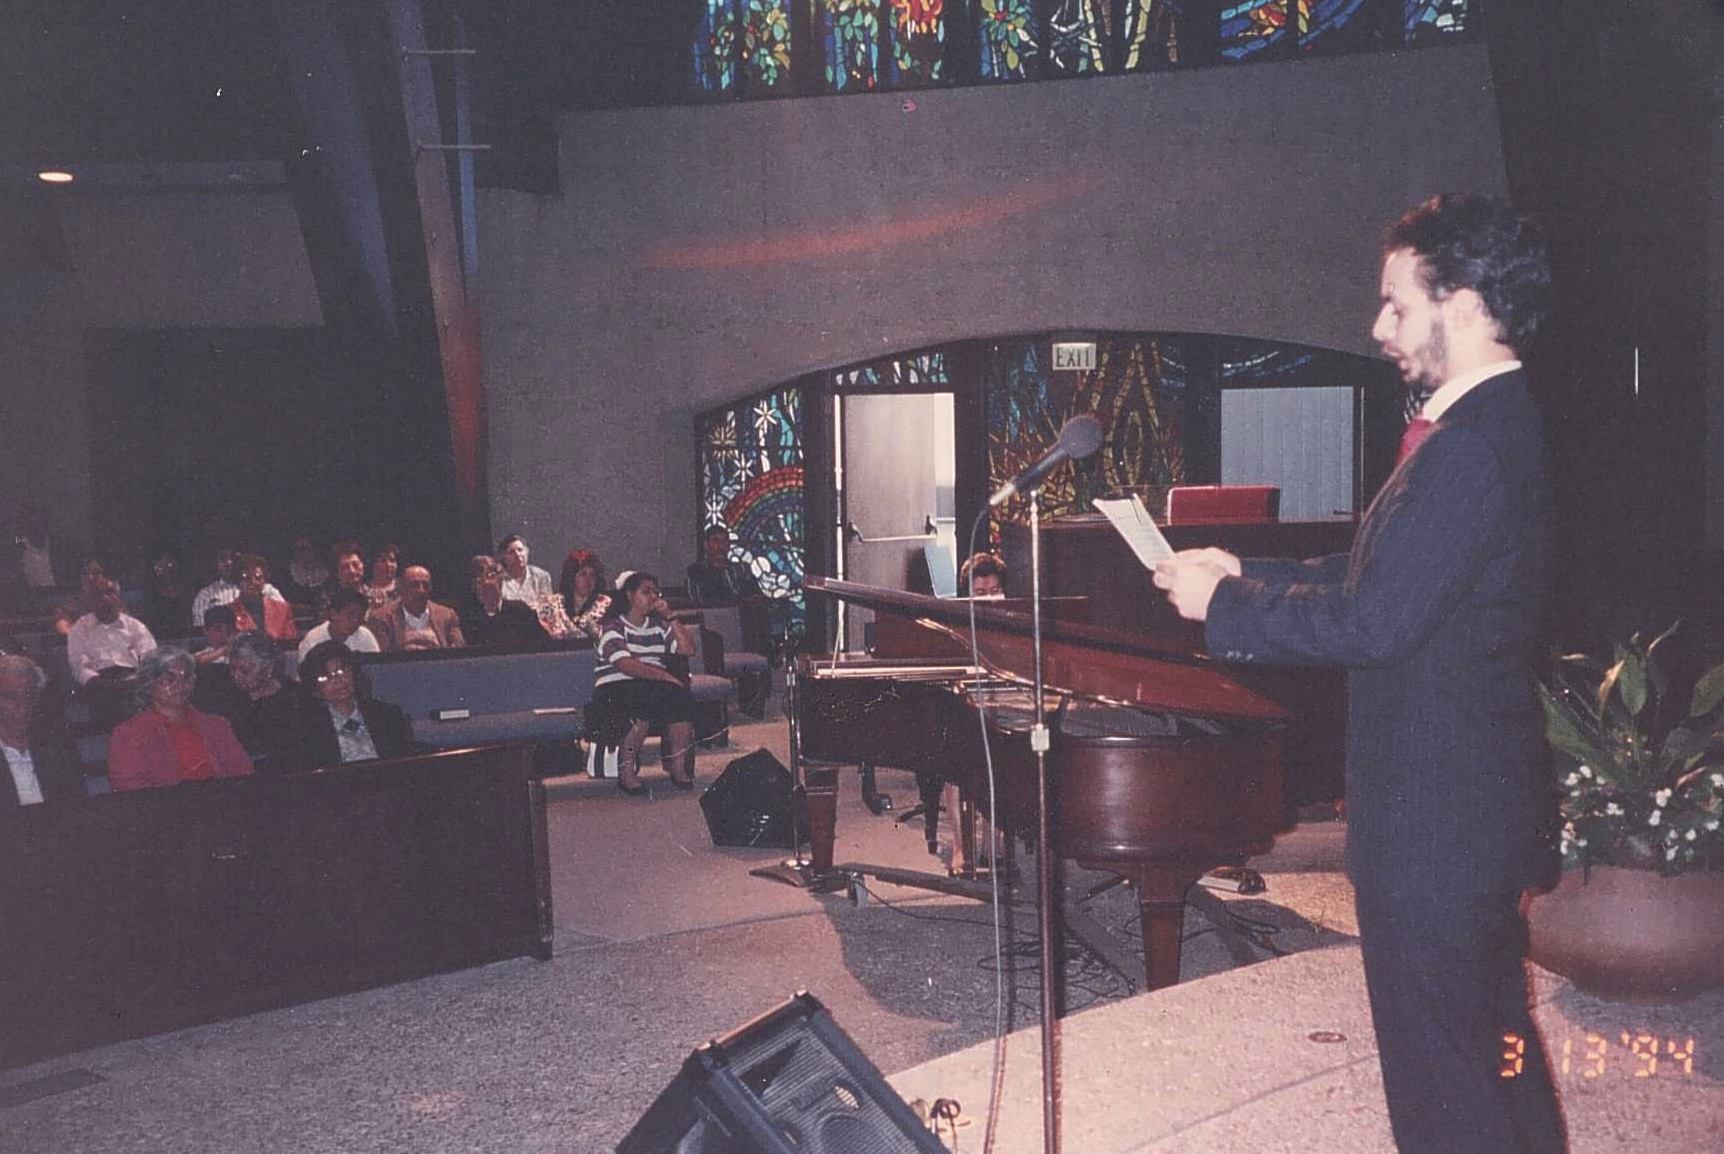 Daniel Djambazian Singing at GPC.jpg